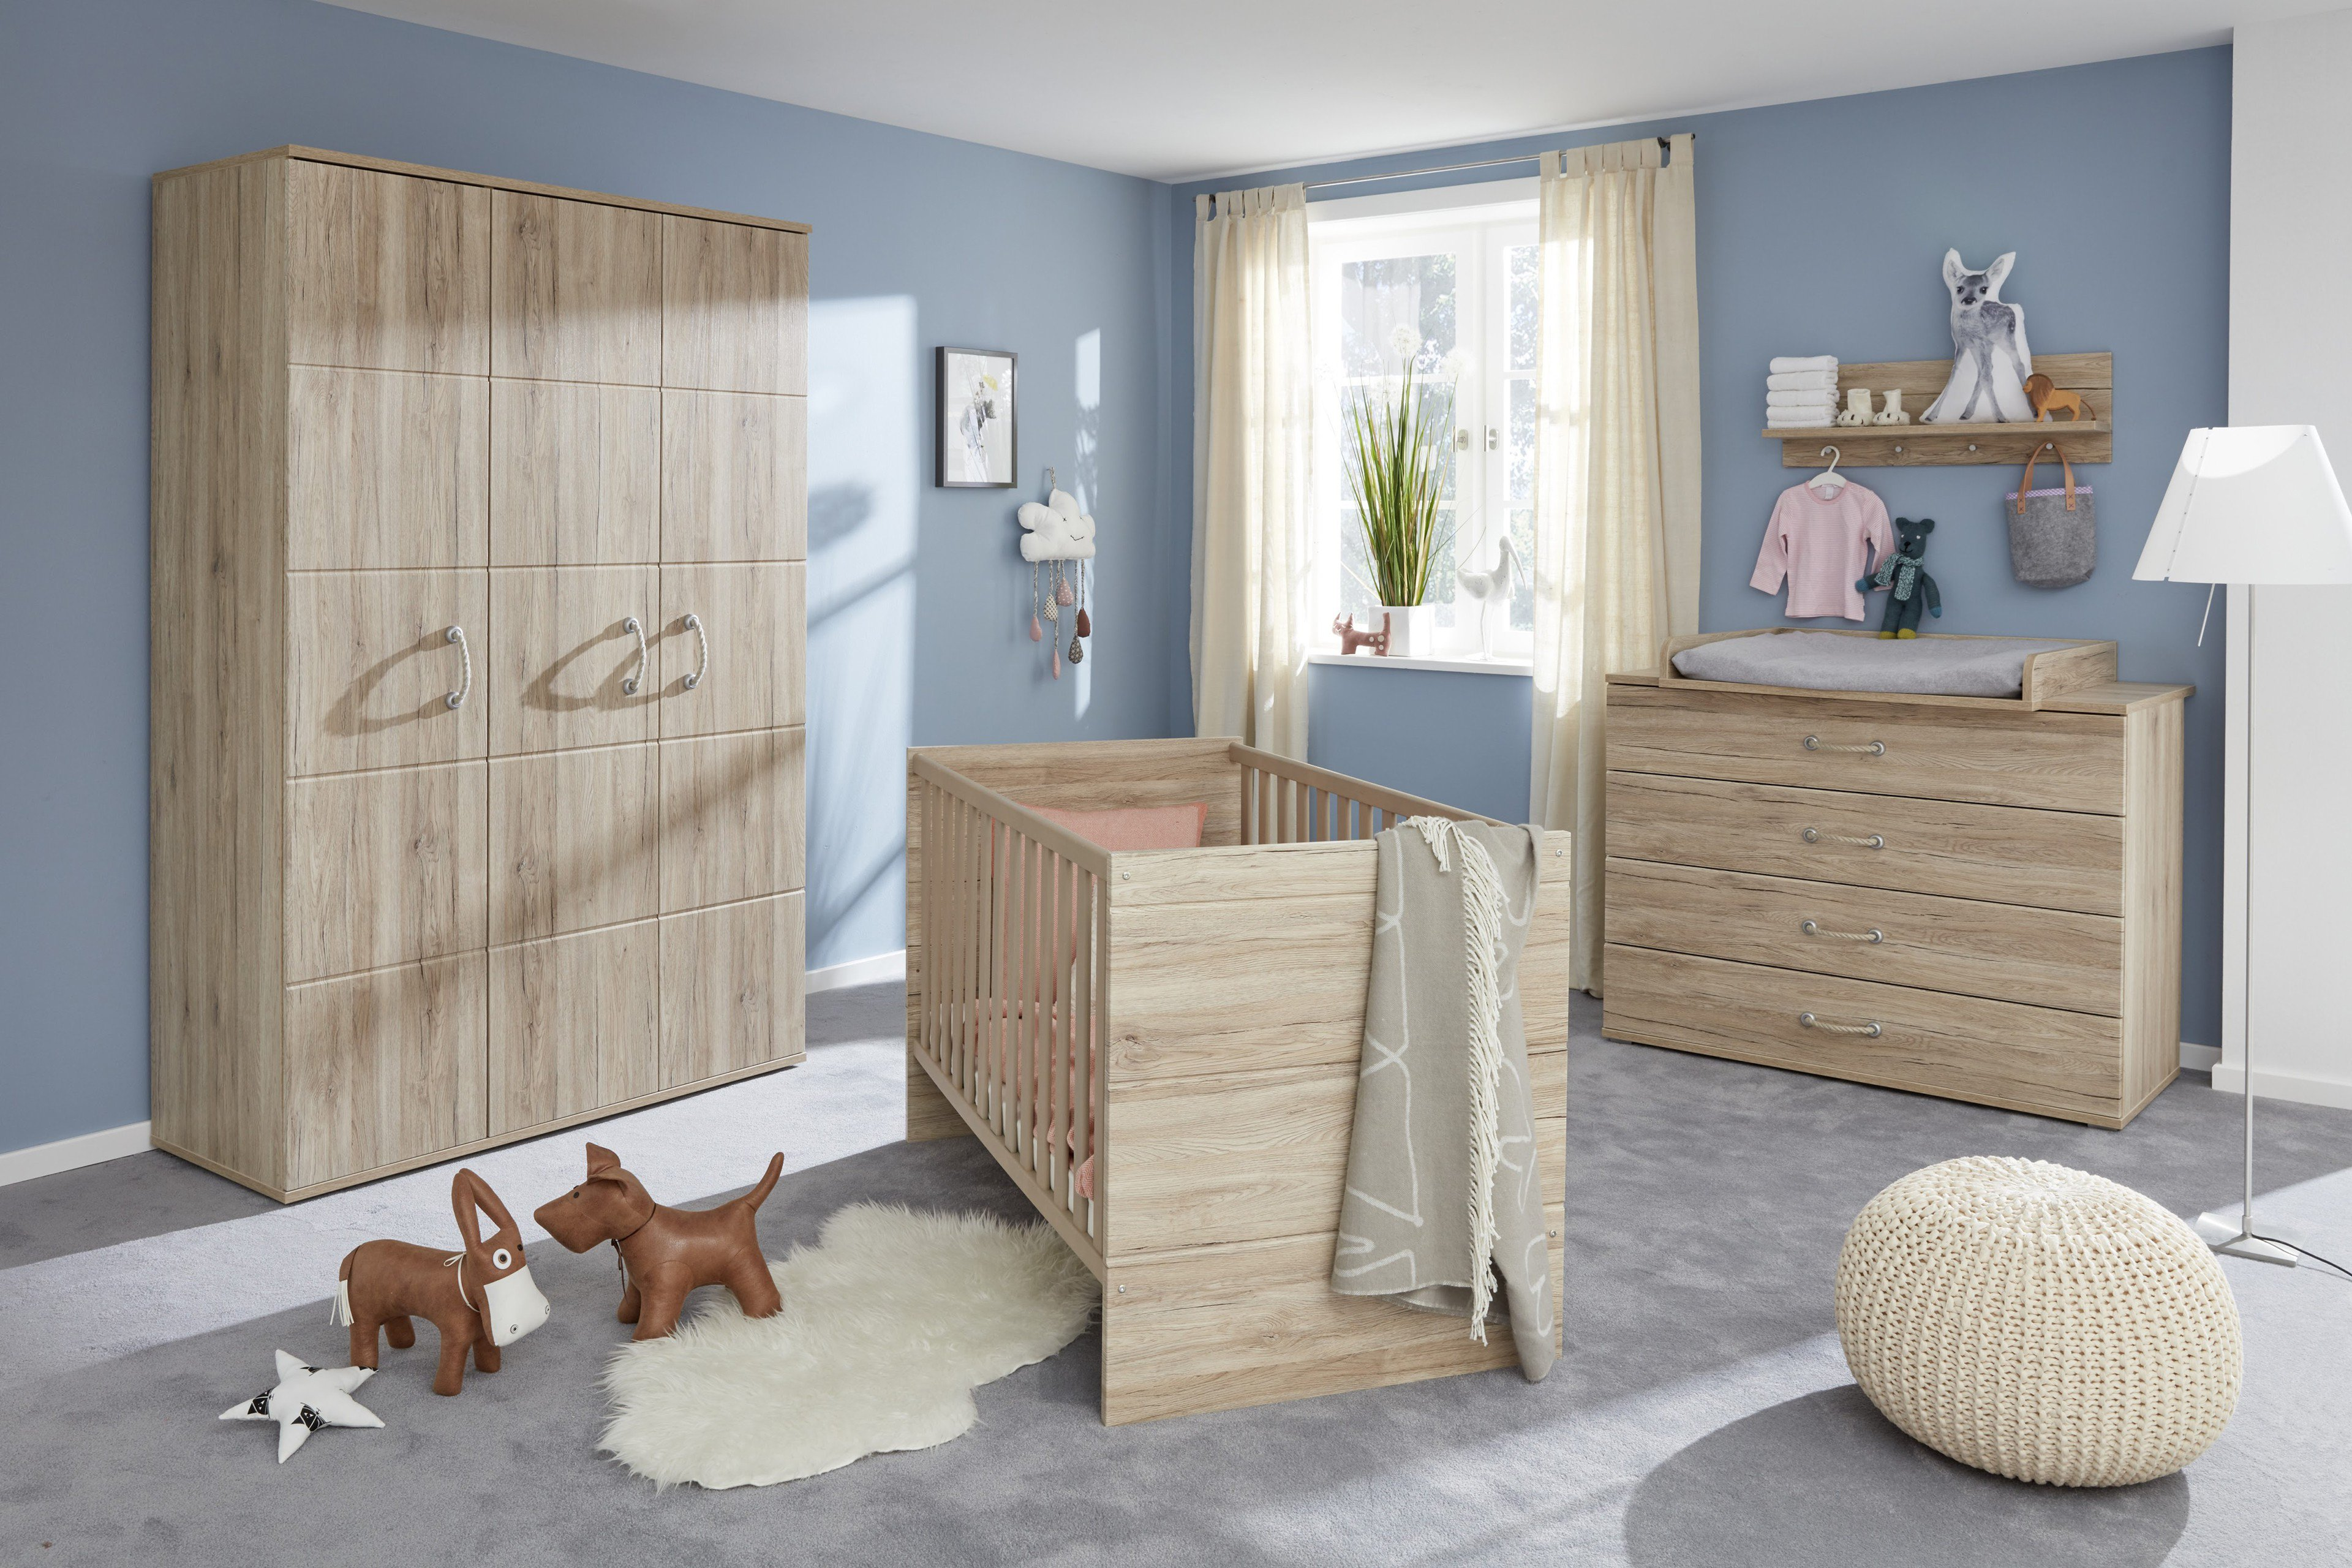 trendteam skagen babyzimmer set eiche san remo m bel. Black Bedroom Furniture Sets. Home Design Ideas